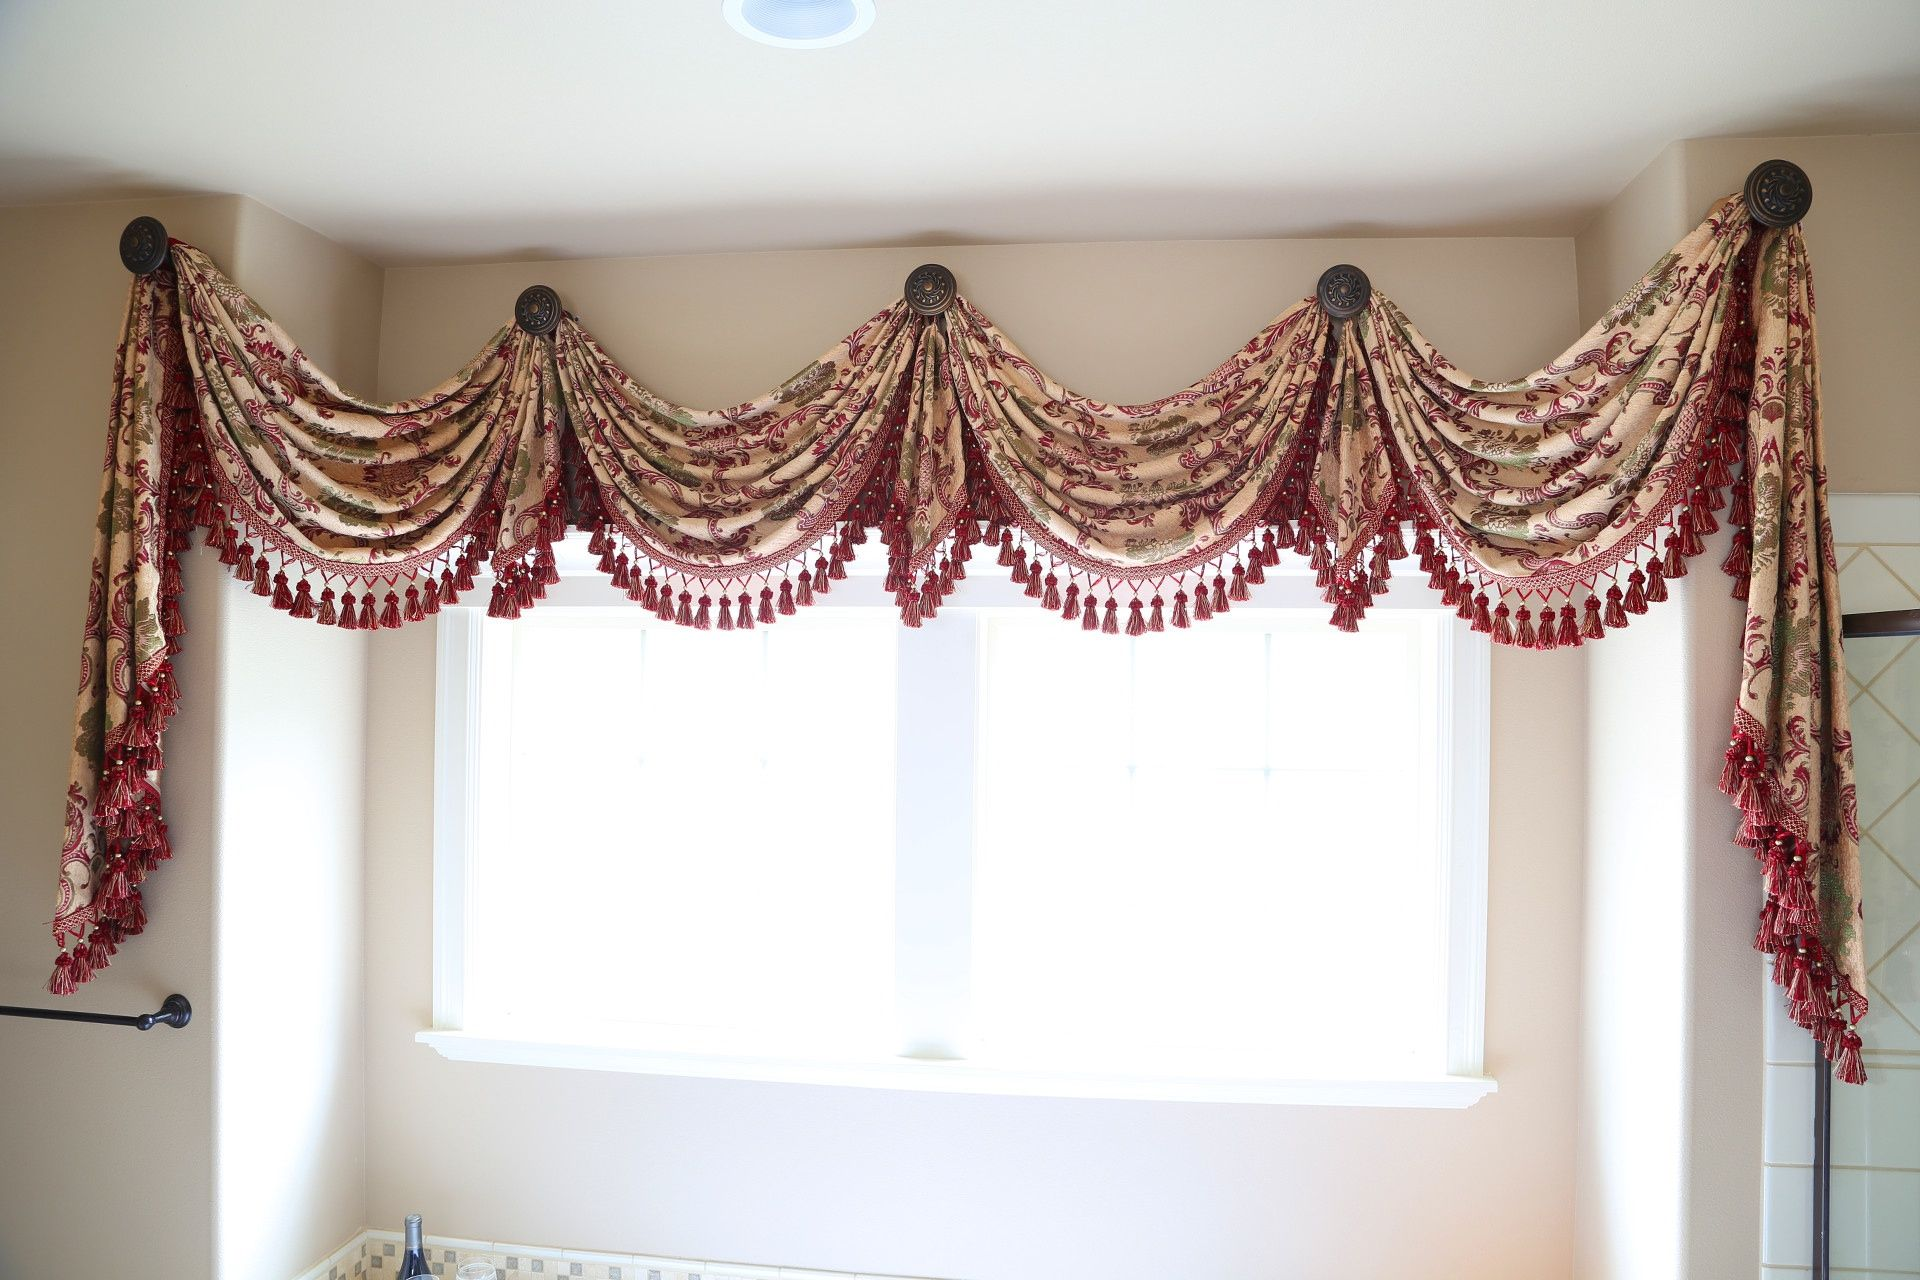 Display kitchen traditional kitchen swag curtains for kitchen